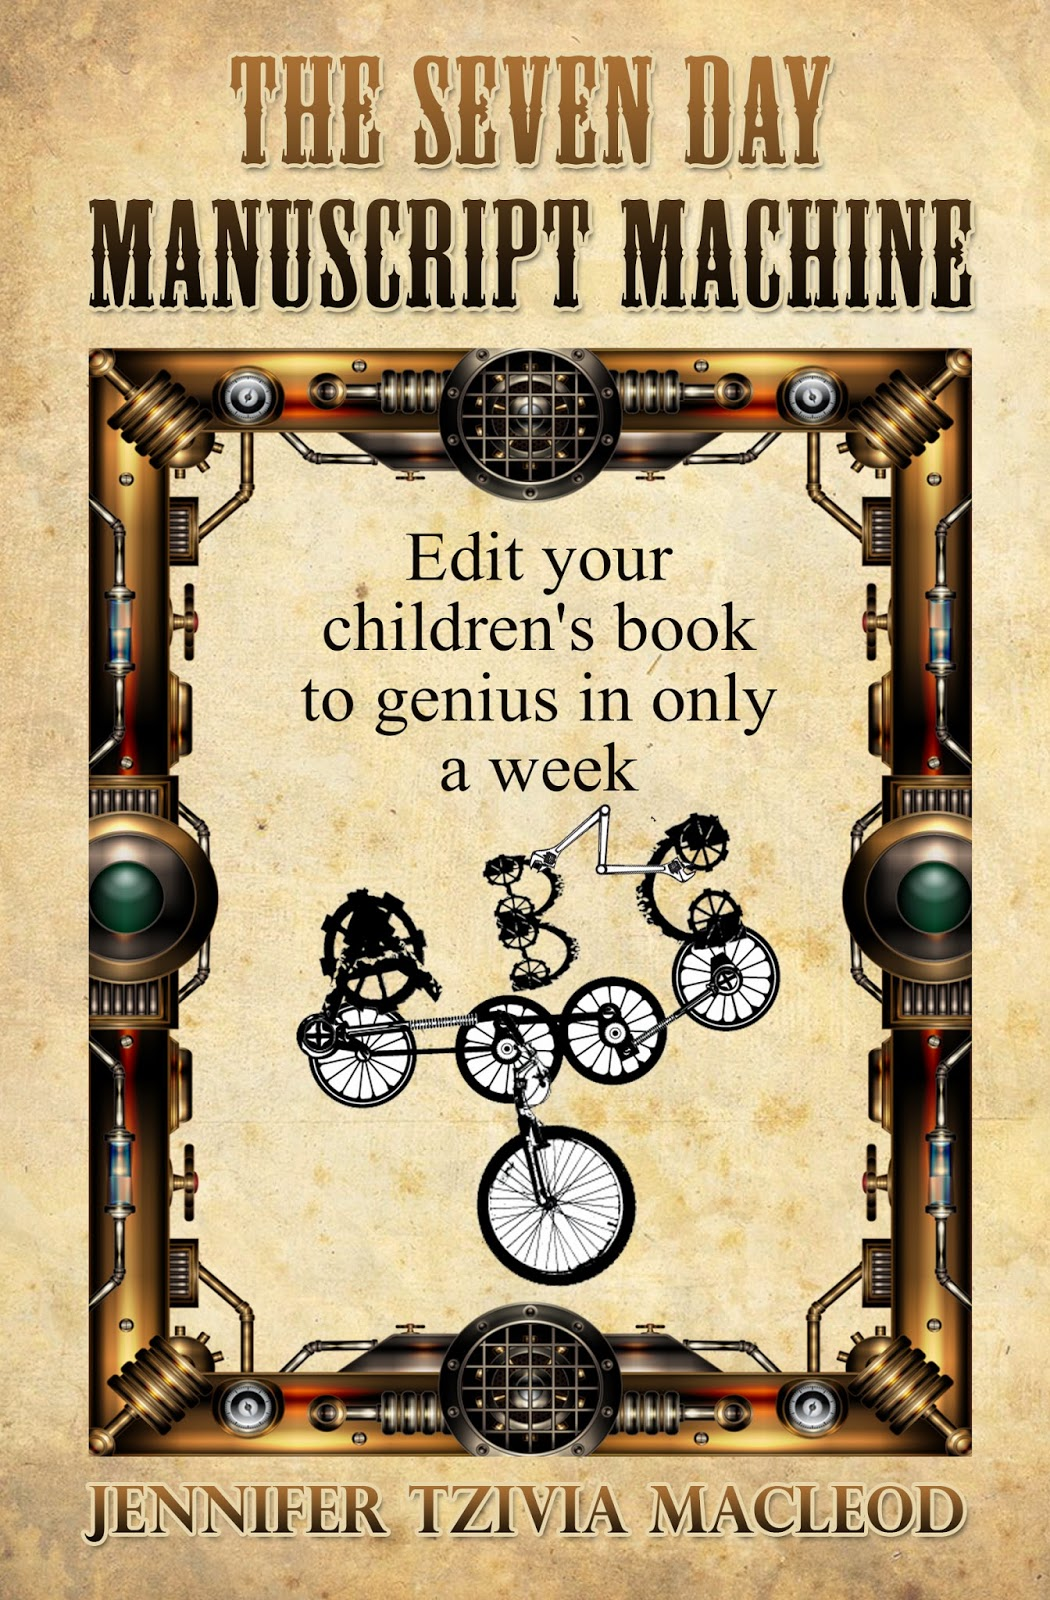 The Seven Day Manuscript Machine, by Jennifer Tzivia MacLeod (front cover)